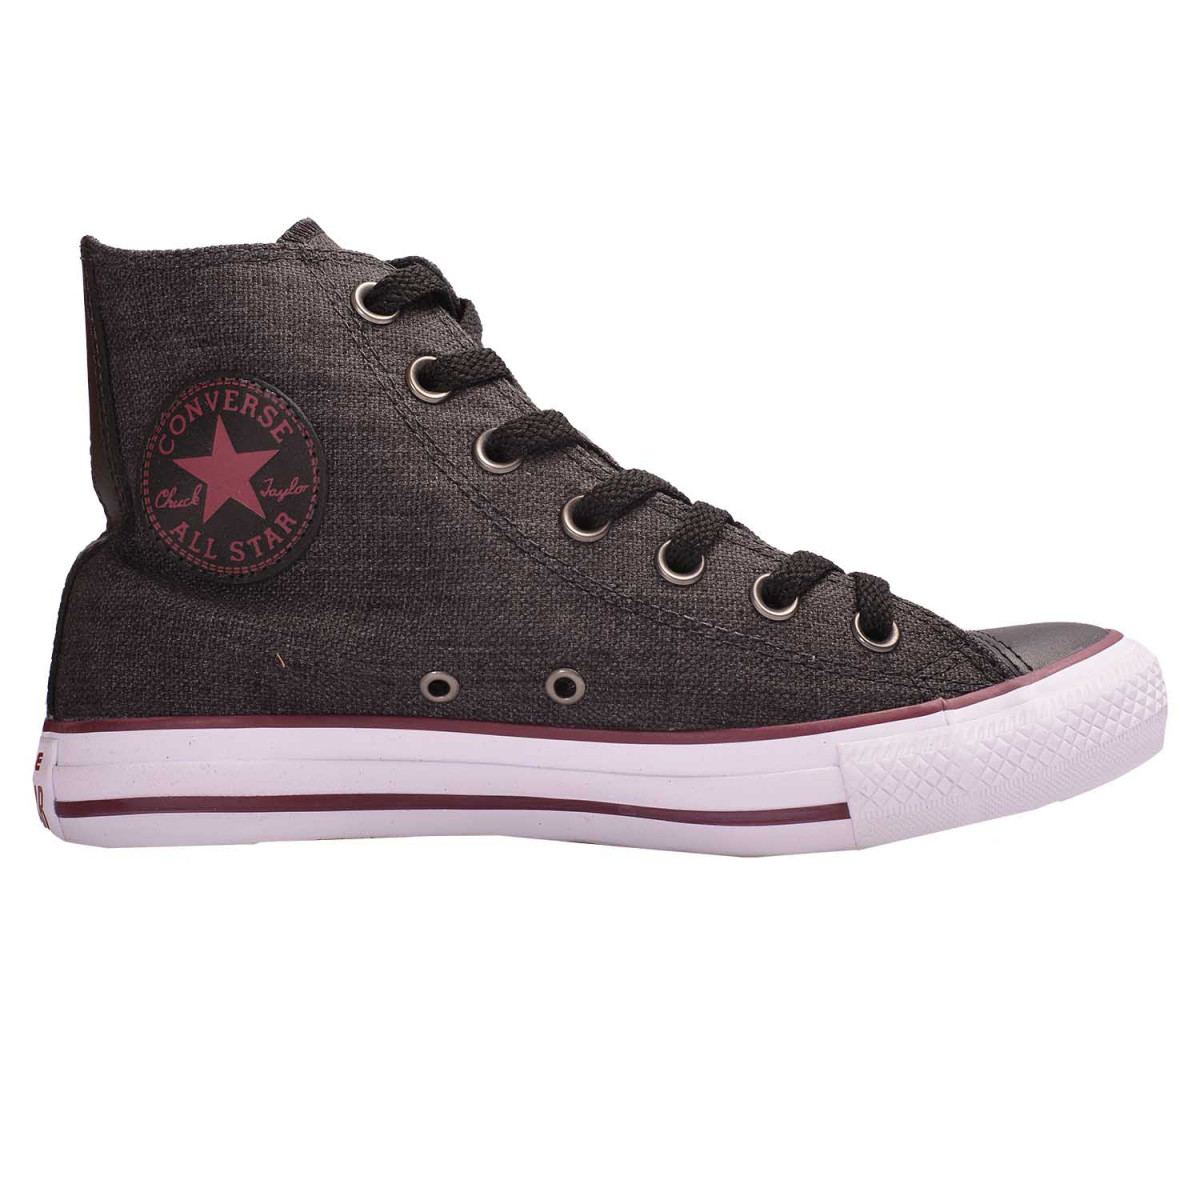 Zapatillas Converse Ct All Star Br